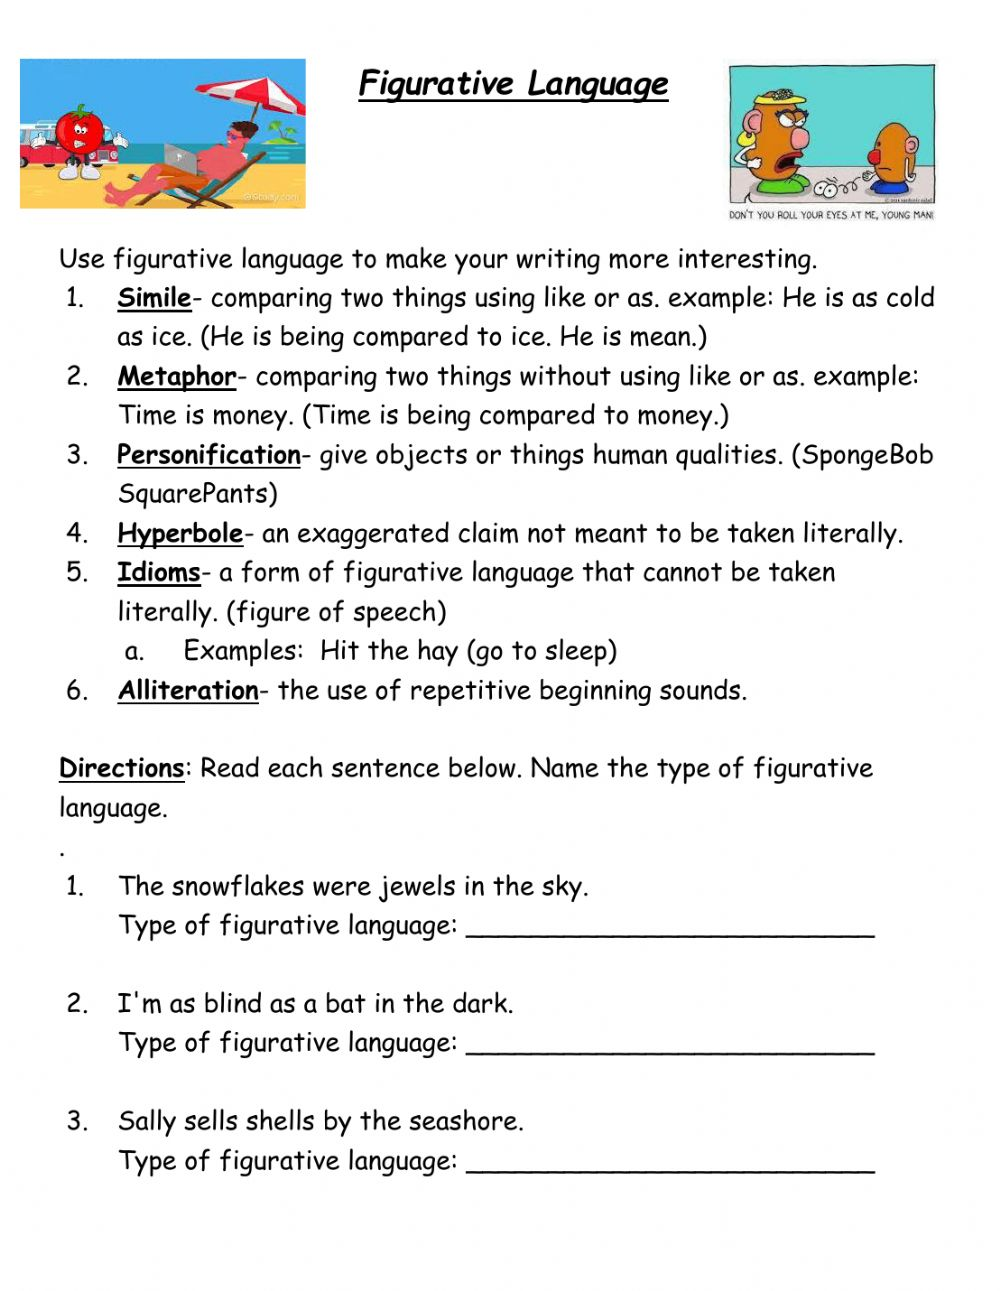 Figurative language interactive activity